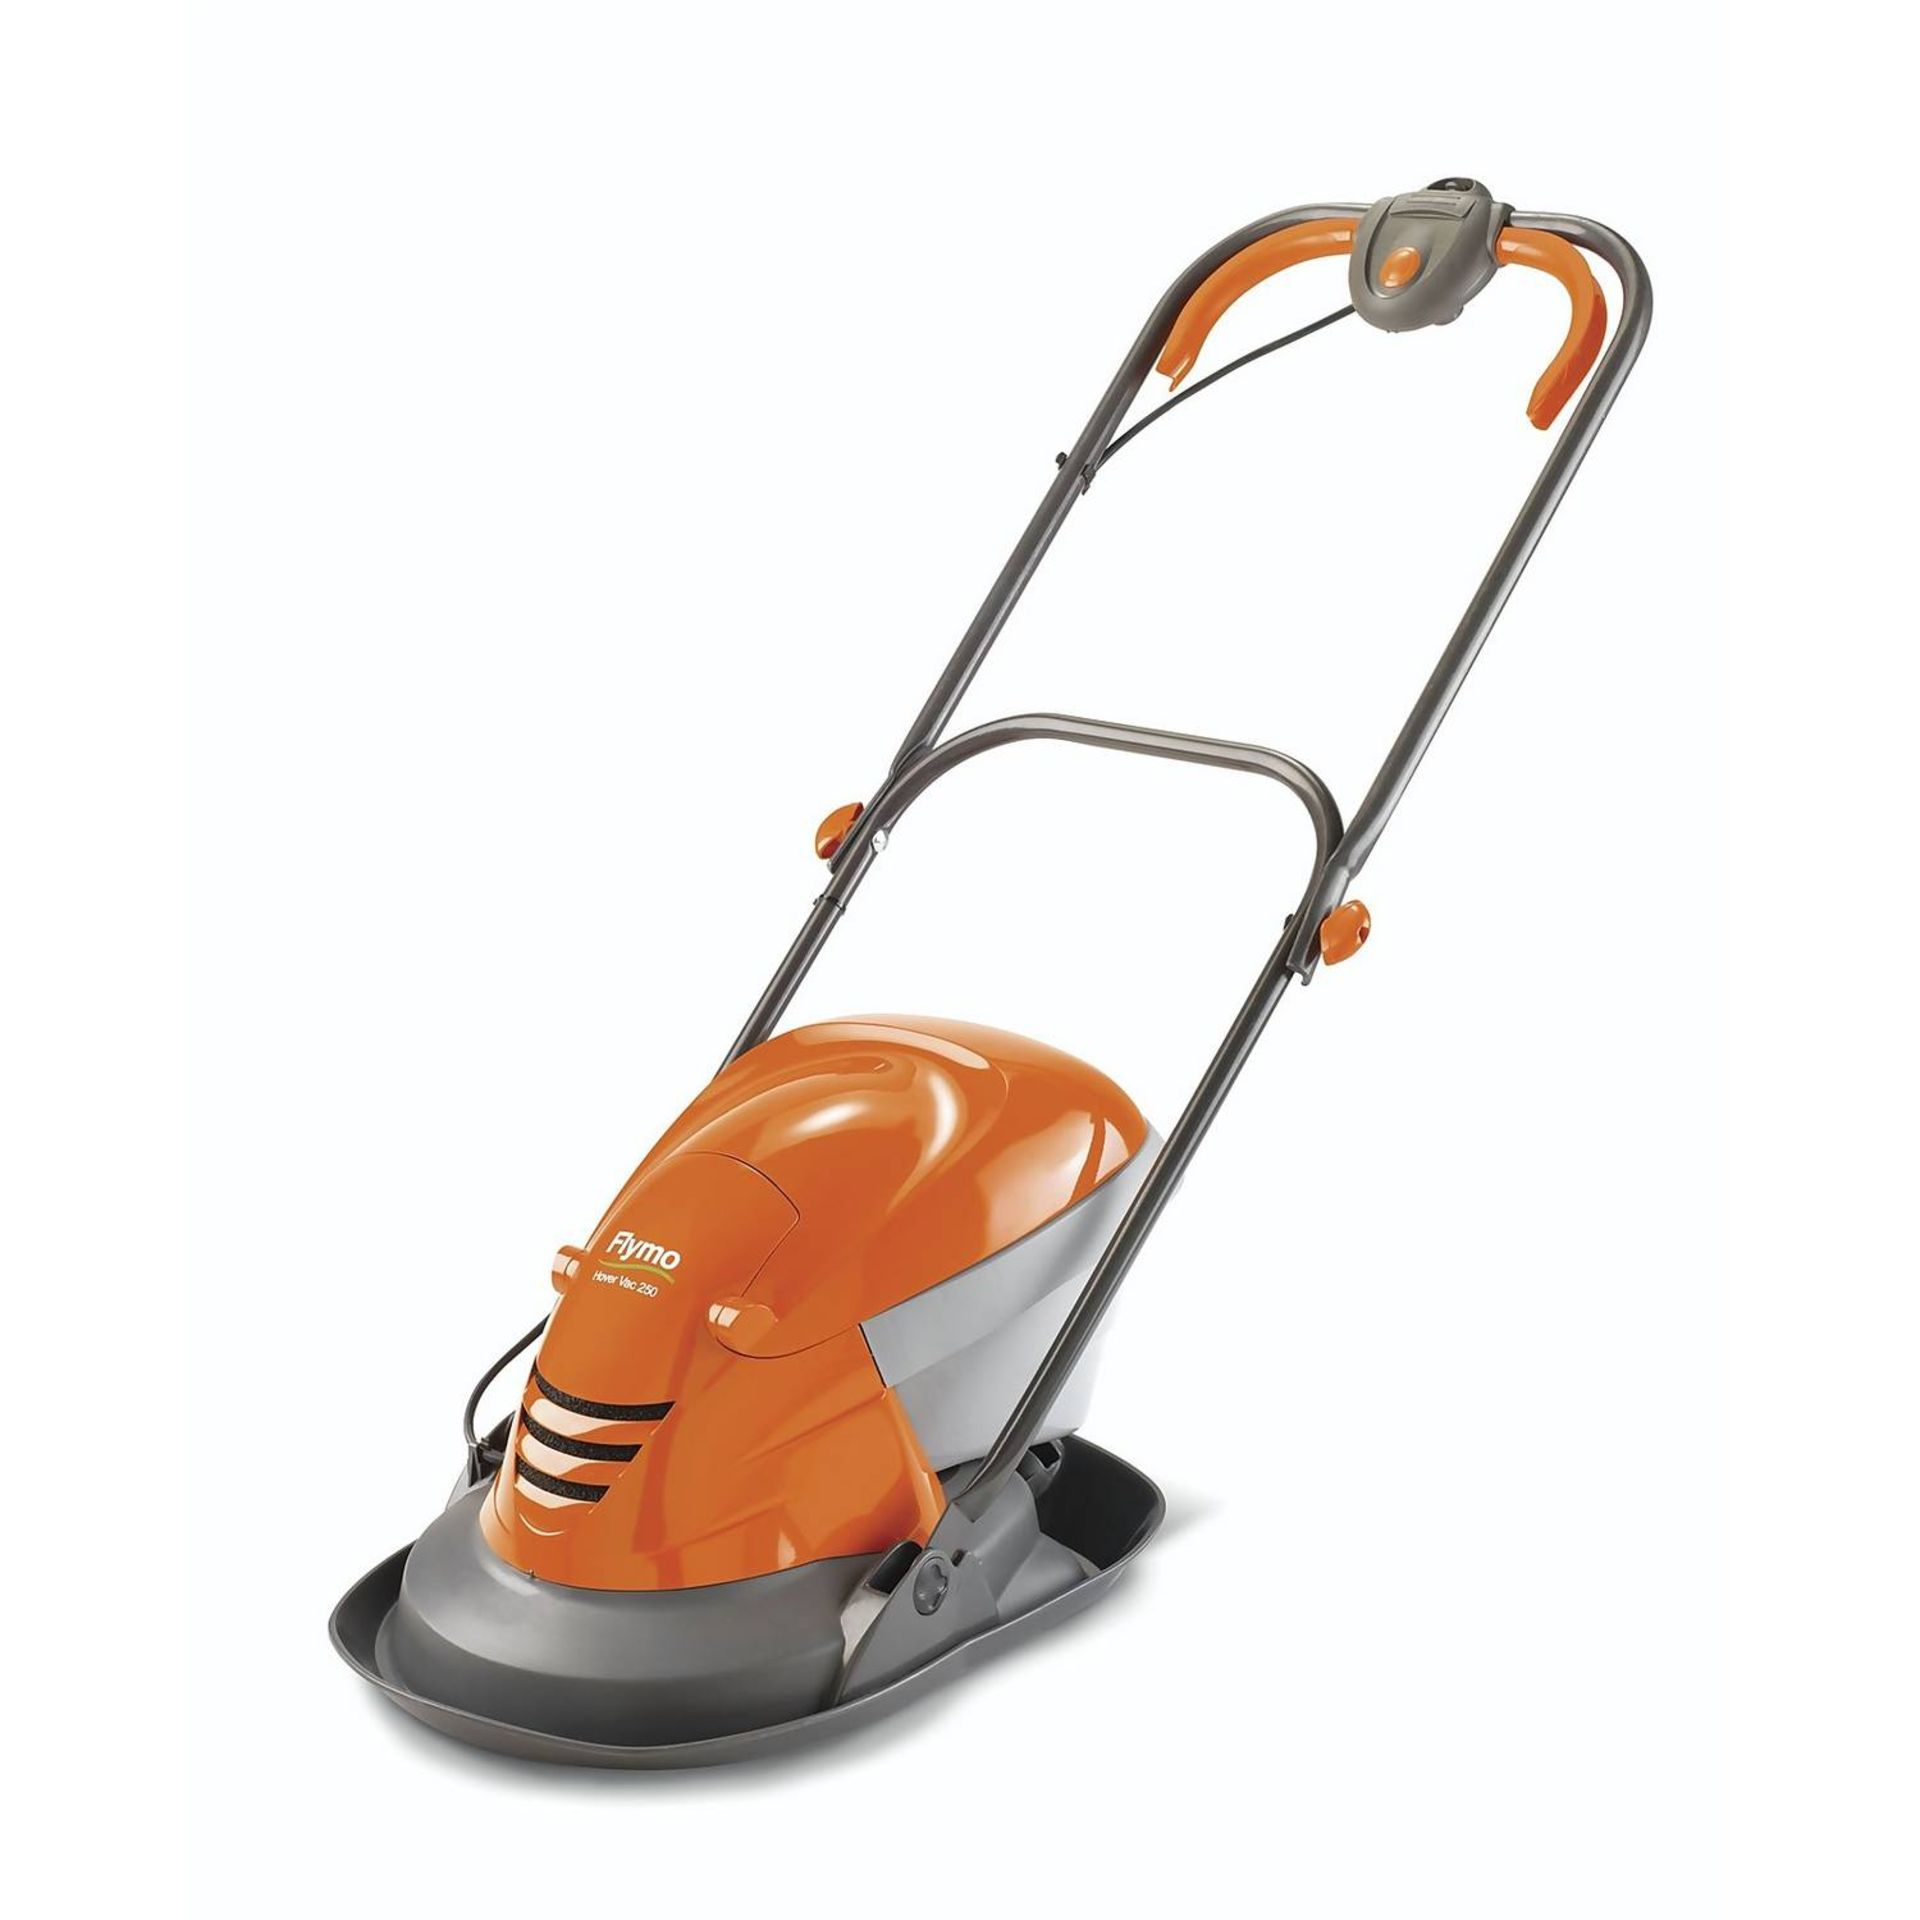 (P8) 1x Flymo Hover Vac 250 RRP £80. Contents Appear Clean, Unused.